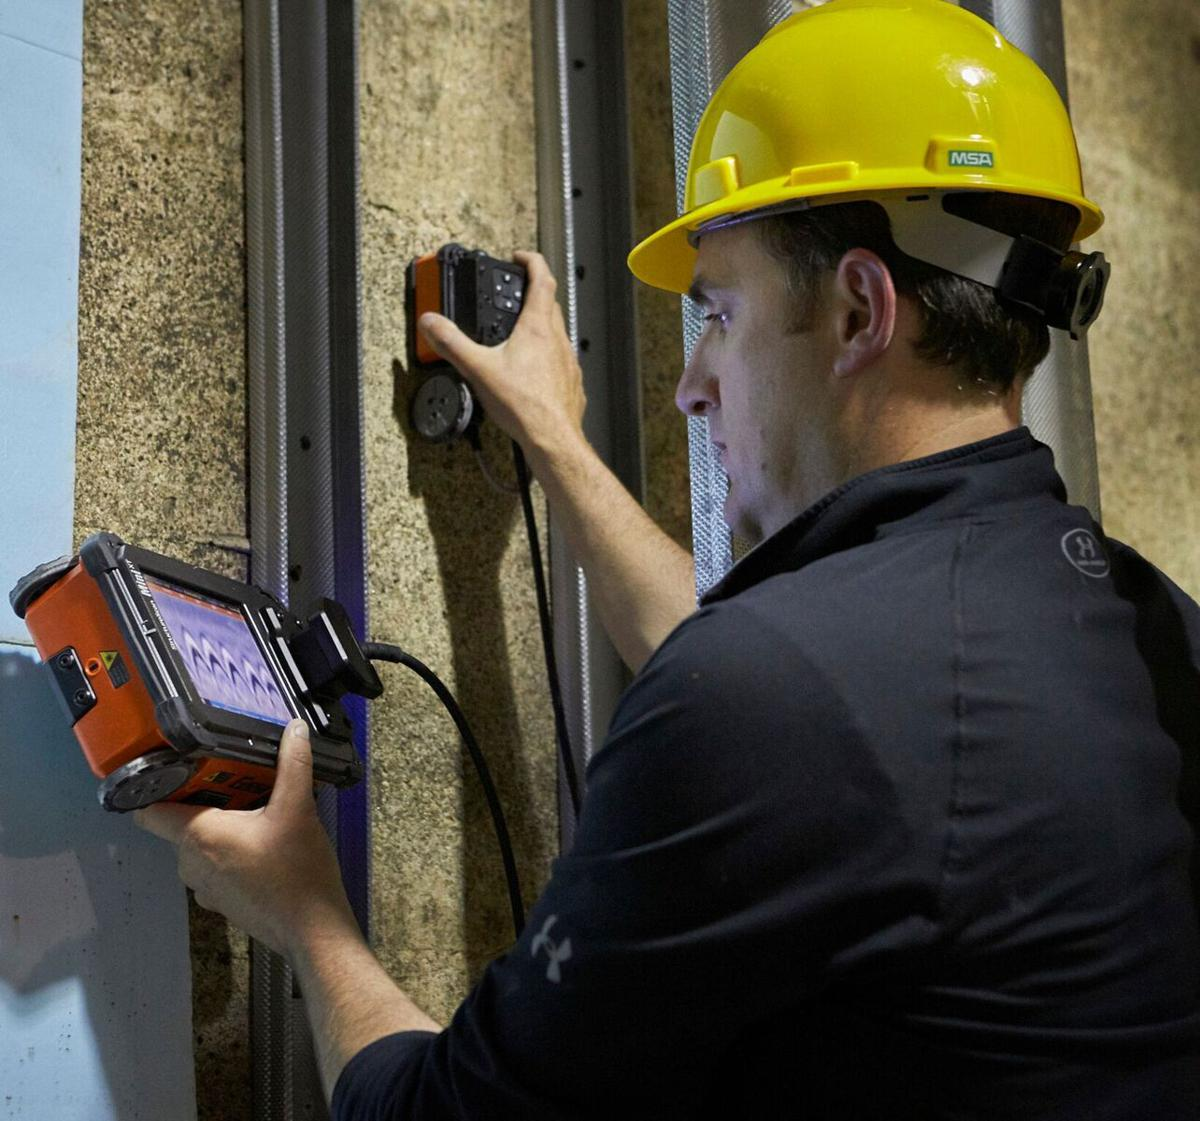 GSSI introduces a handheld all-in-one GPR Concrete Inspection System